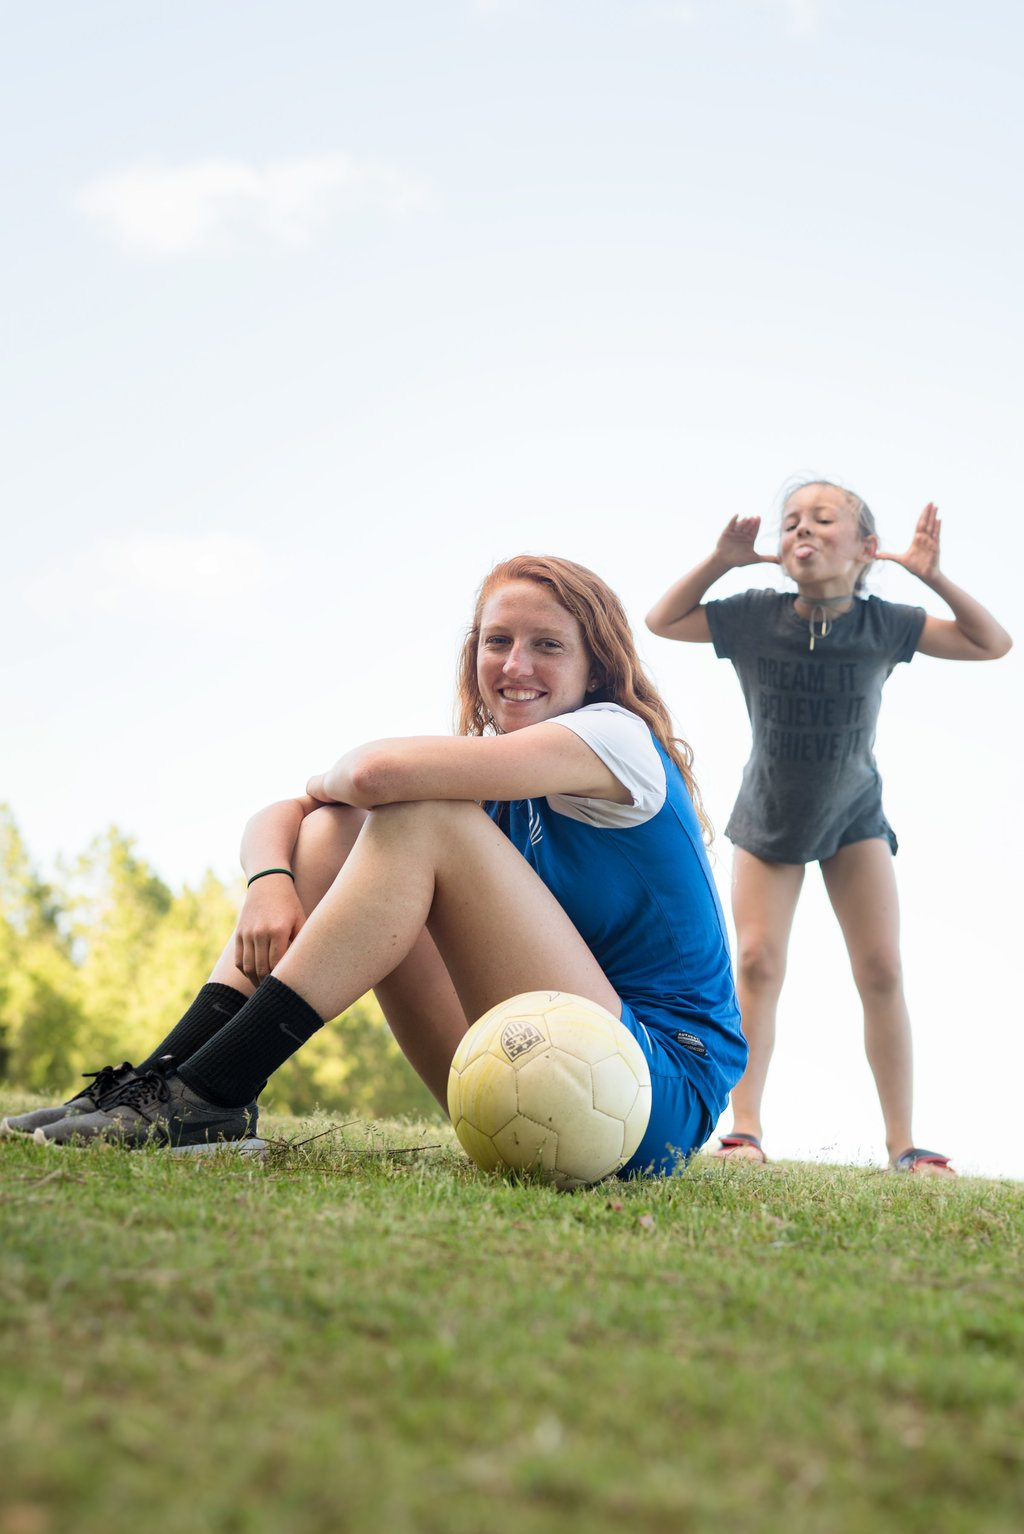 pedro menendez high school soccer star emma shares a laugh with her little sister